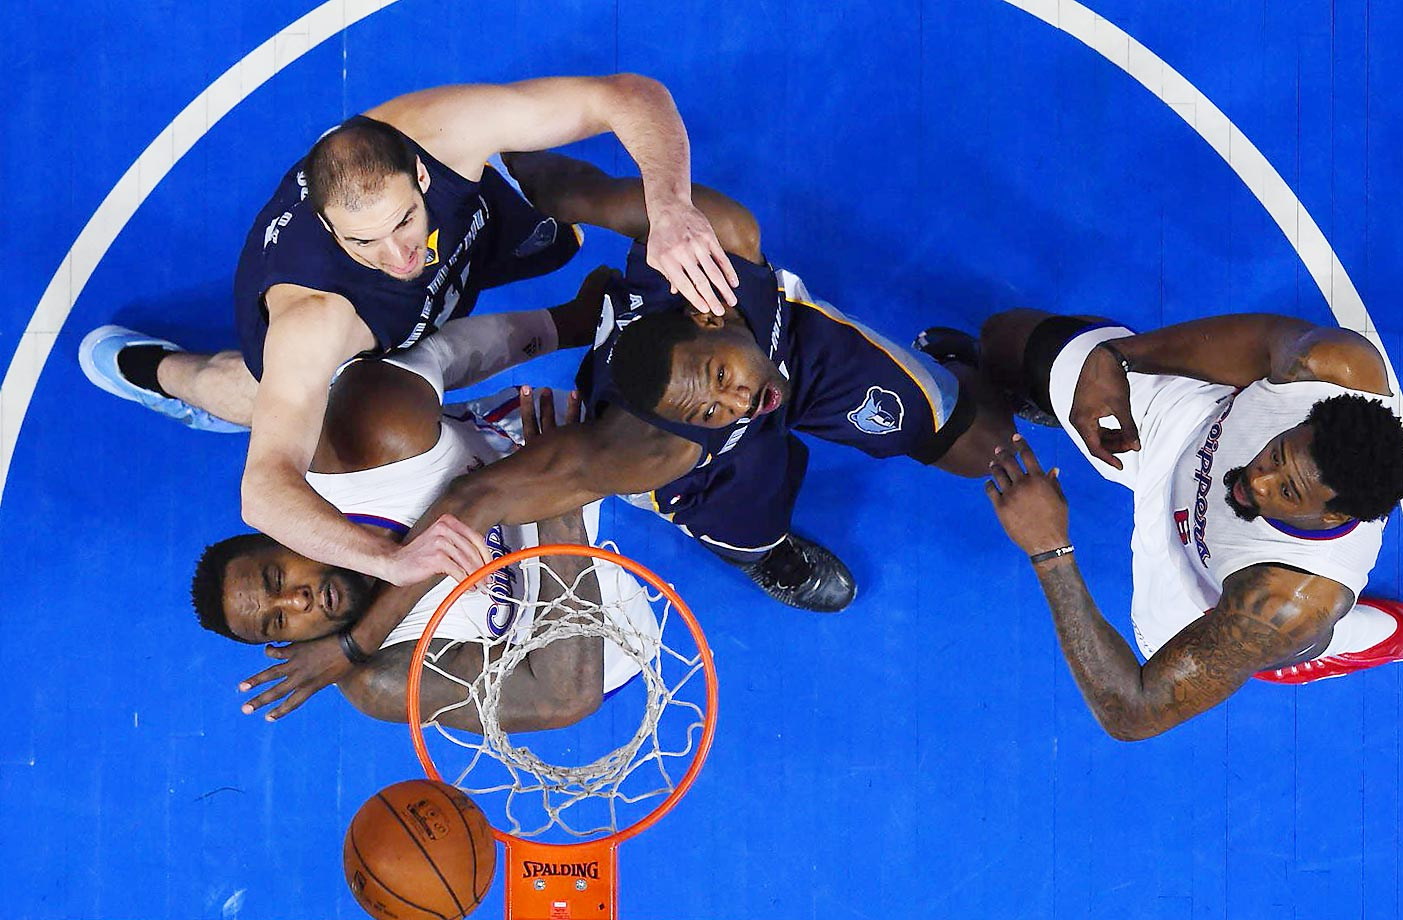 Players from the Los Angeles Clippers and Memphis Grizzlies fight for a rebound during a game at Staples Center.